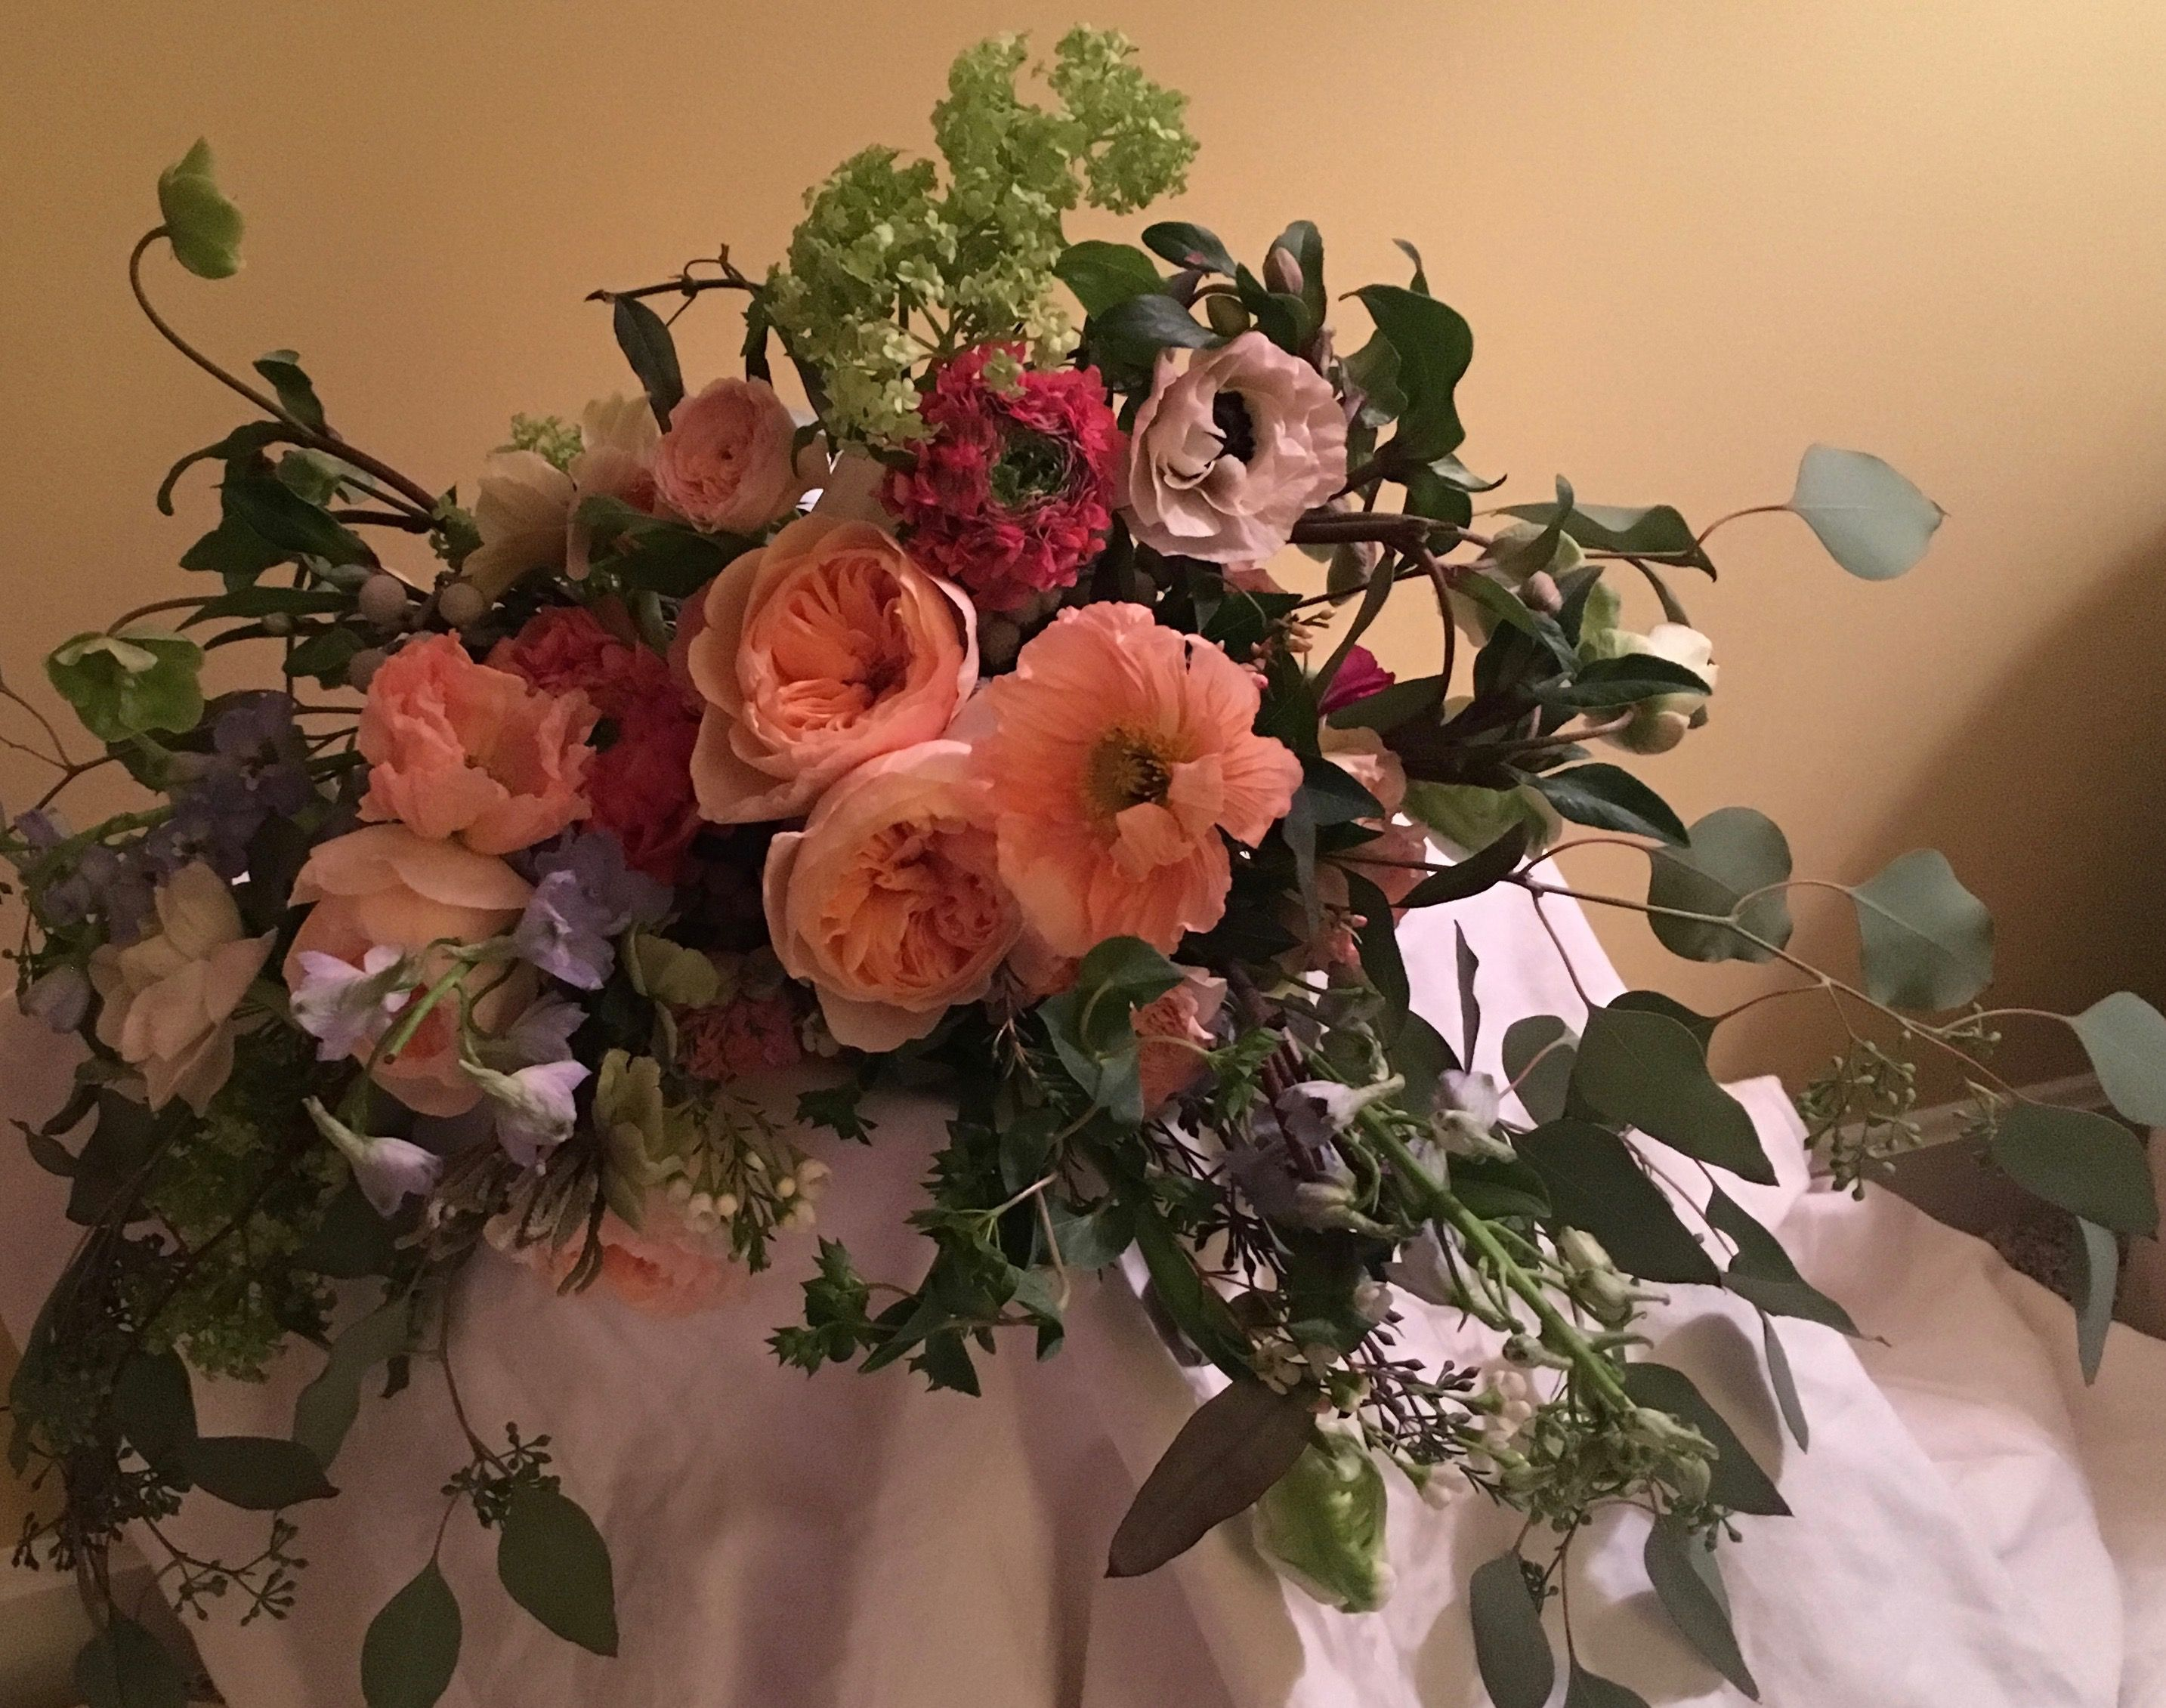 Wild Garden Style Wedding Bouquet By Poppies And Twine Floral Design Event And Wedding Florist Yarmouth Maine Wedding Florist Floral Arrangements Florist